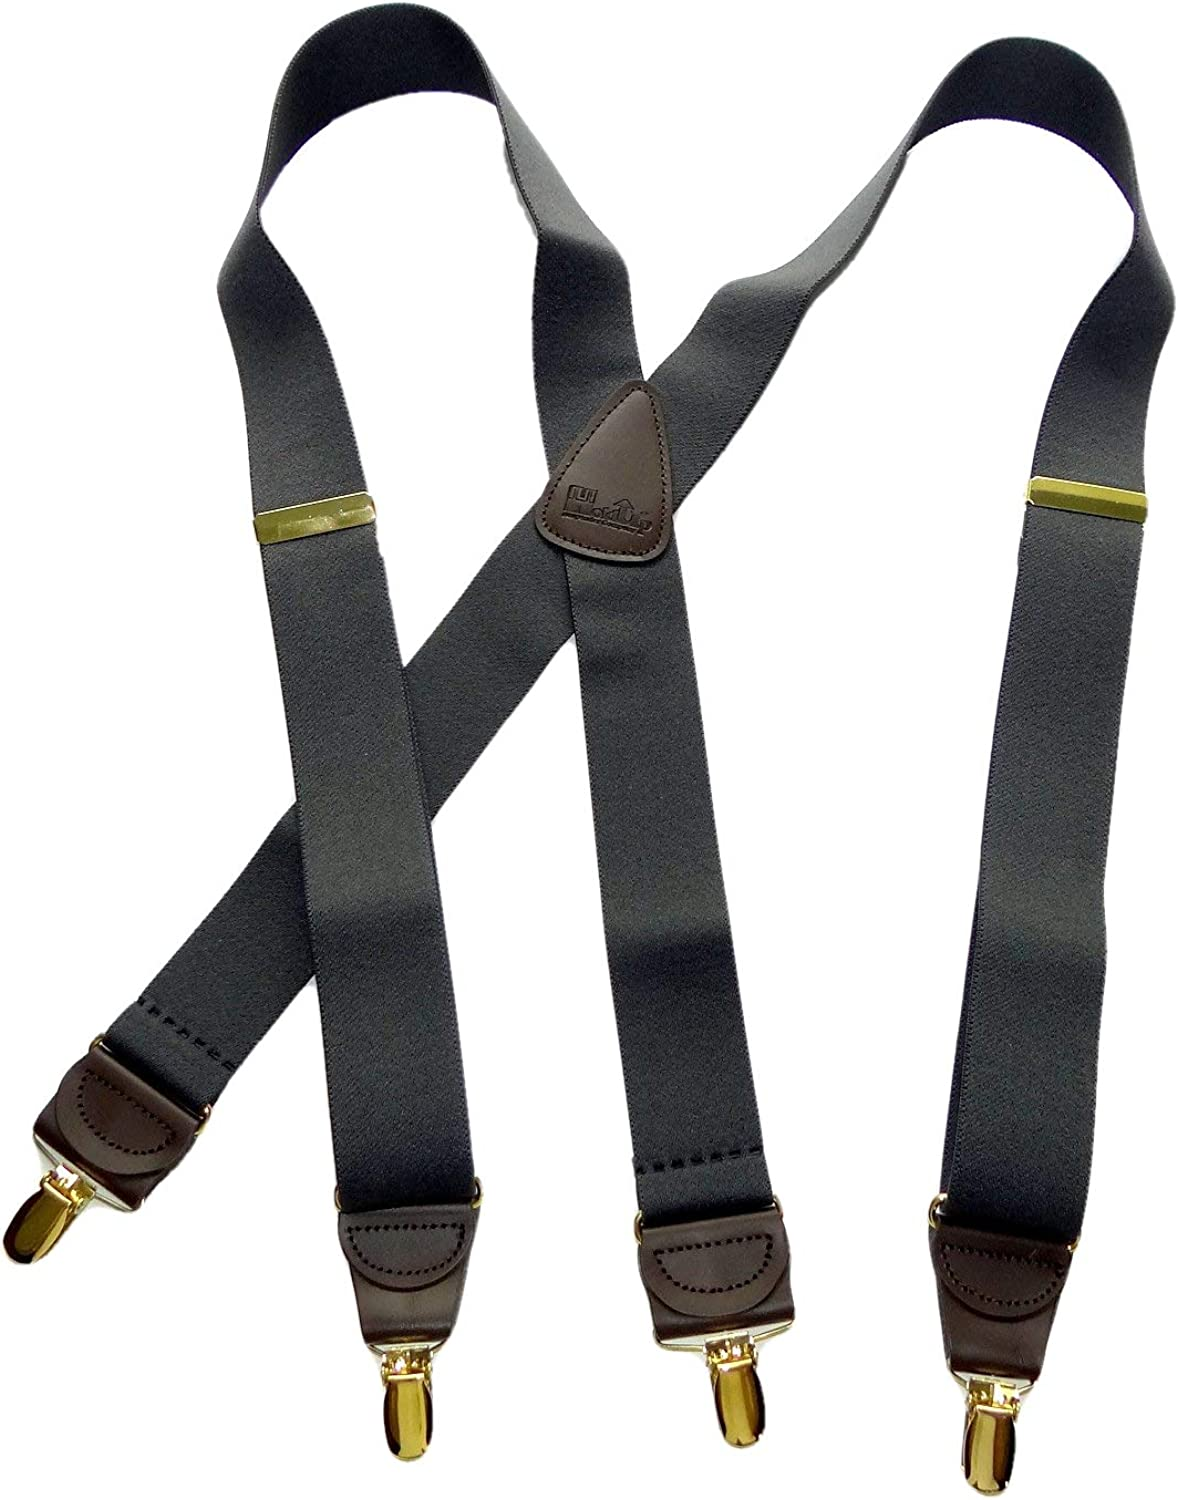 Holdup Brand Dark Slate Gray X-back Suspenders with Patented No-slip Gold-tone Clips